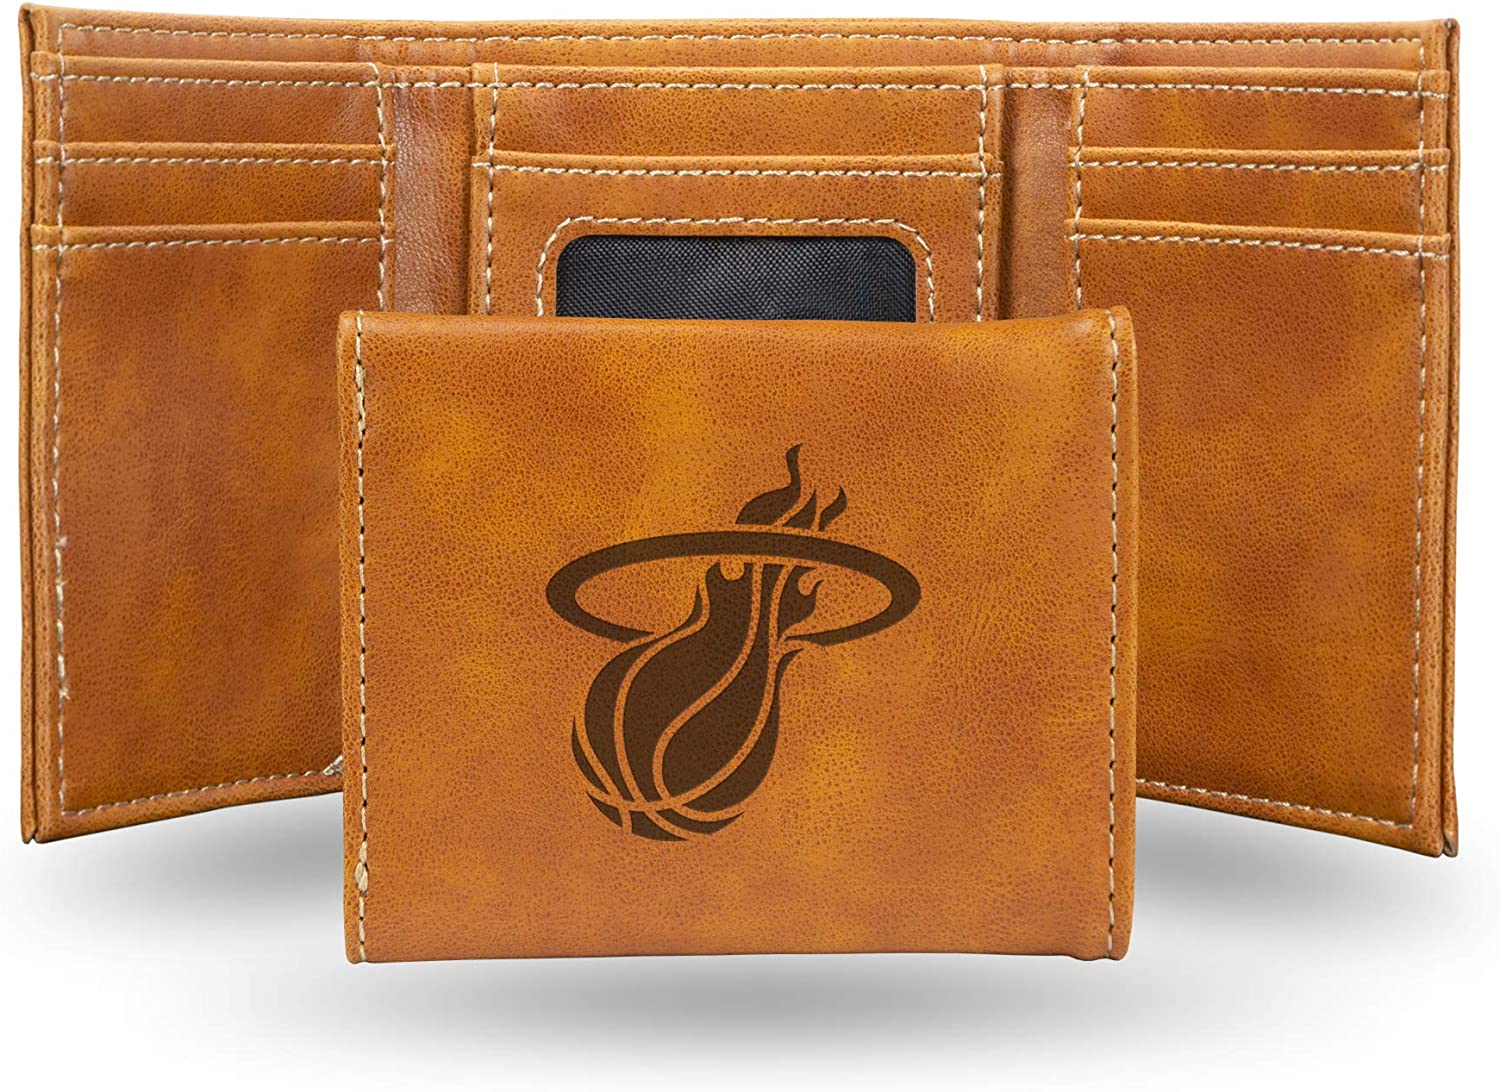 NBA Today's only Rico Industries Laser Engraved Miami Heat Los Angeles Mall Trifold Wallet